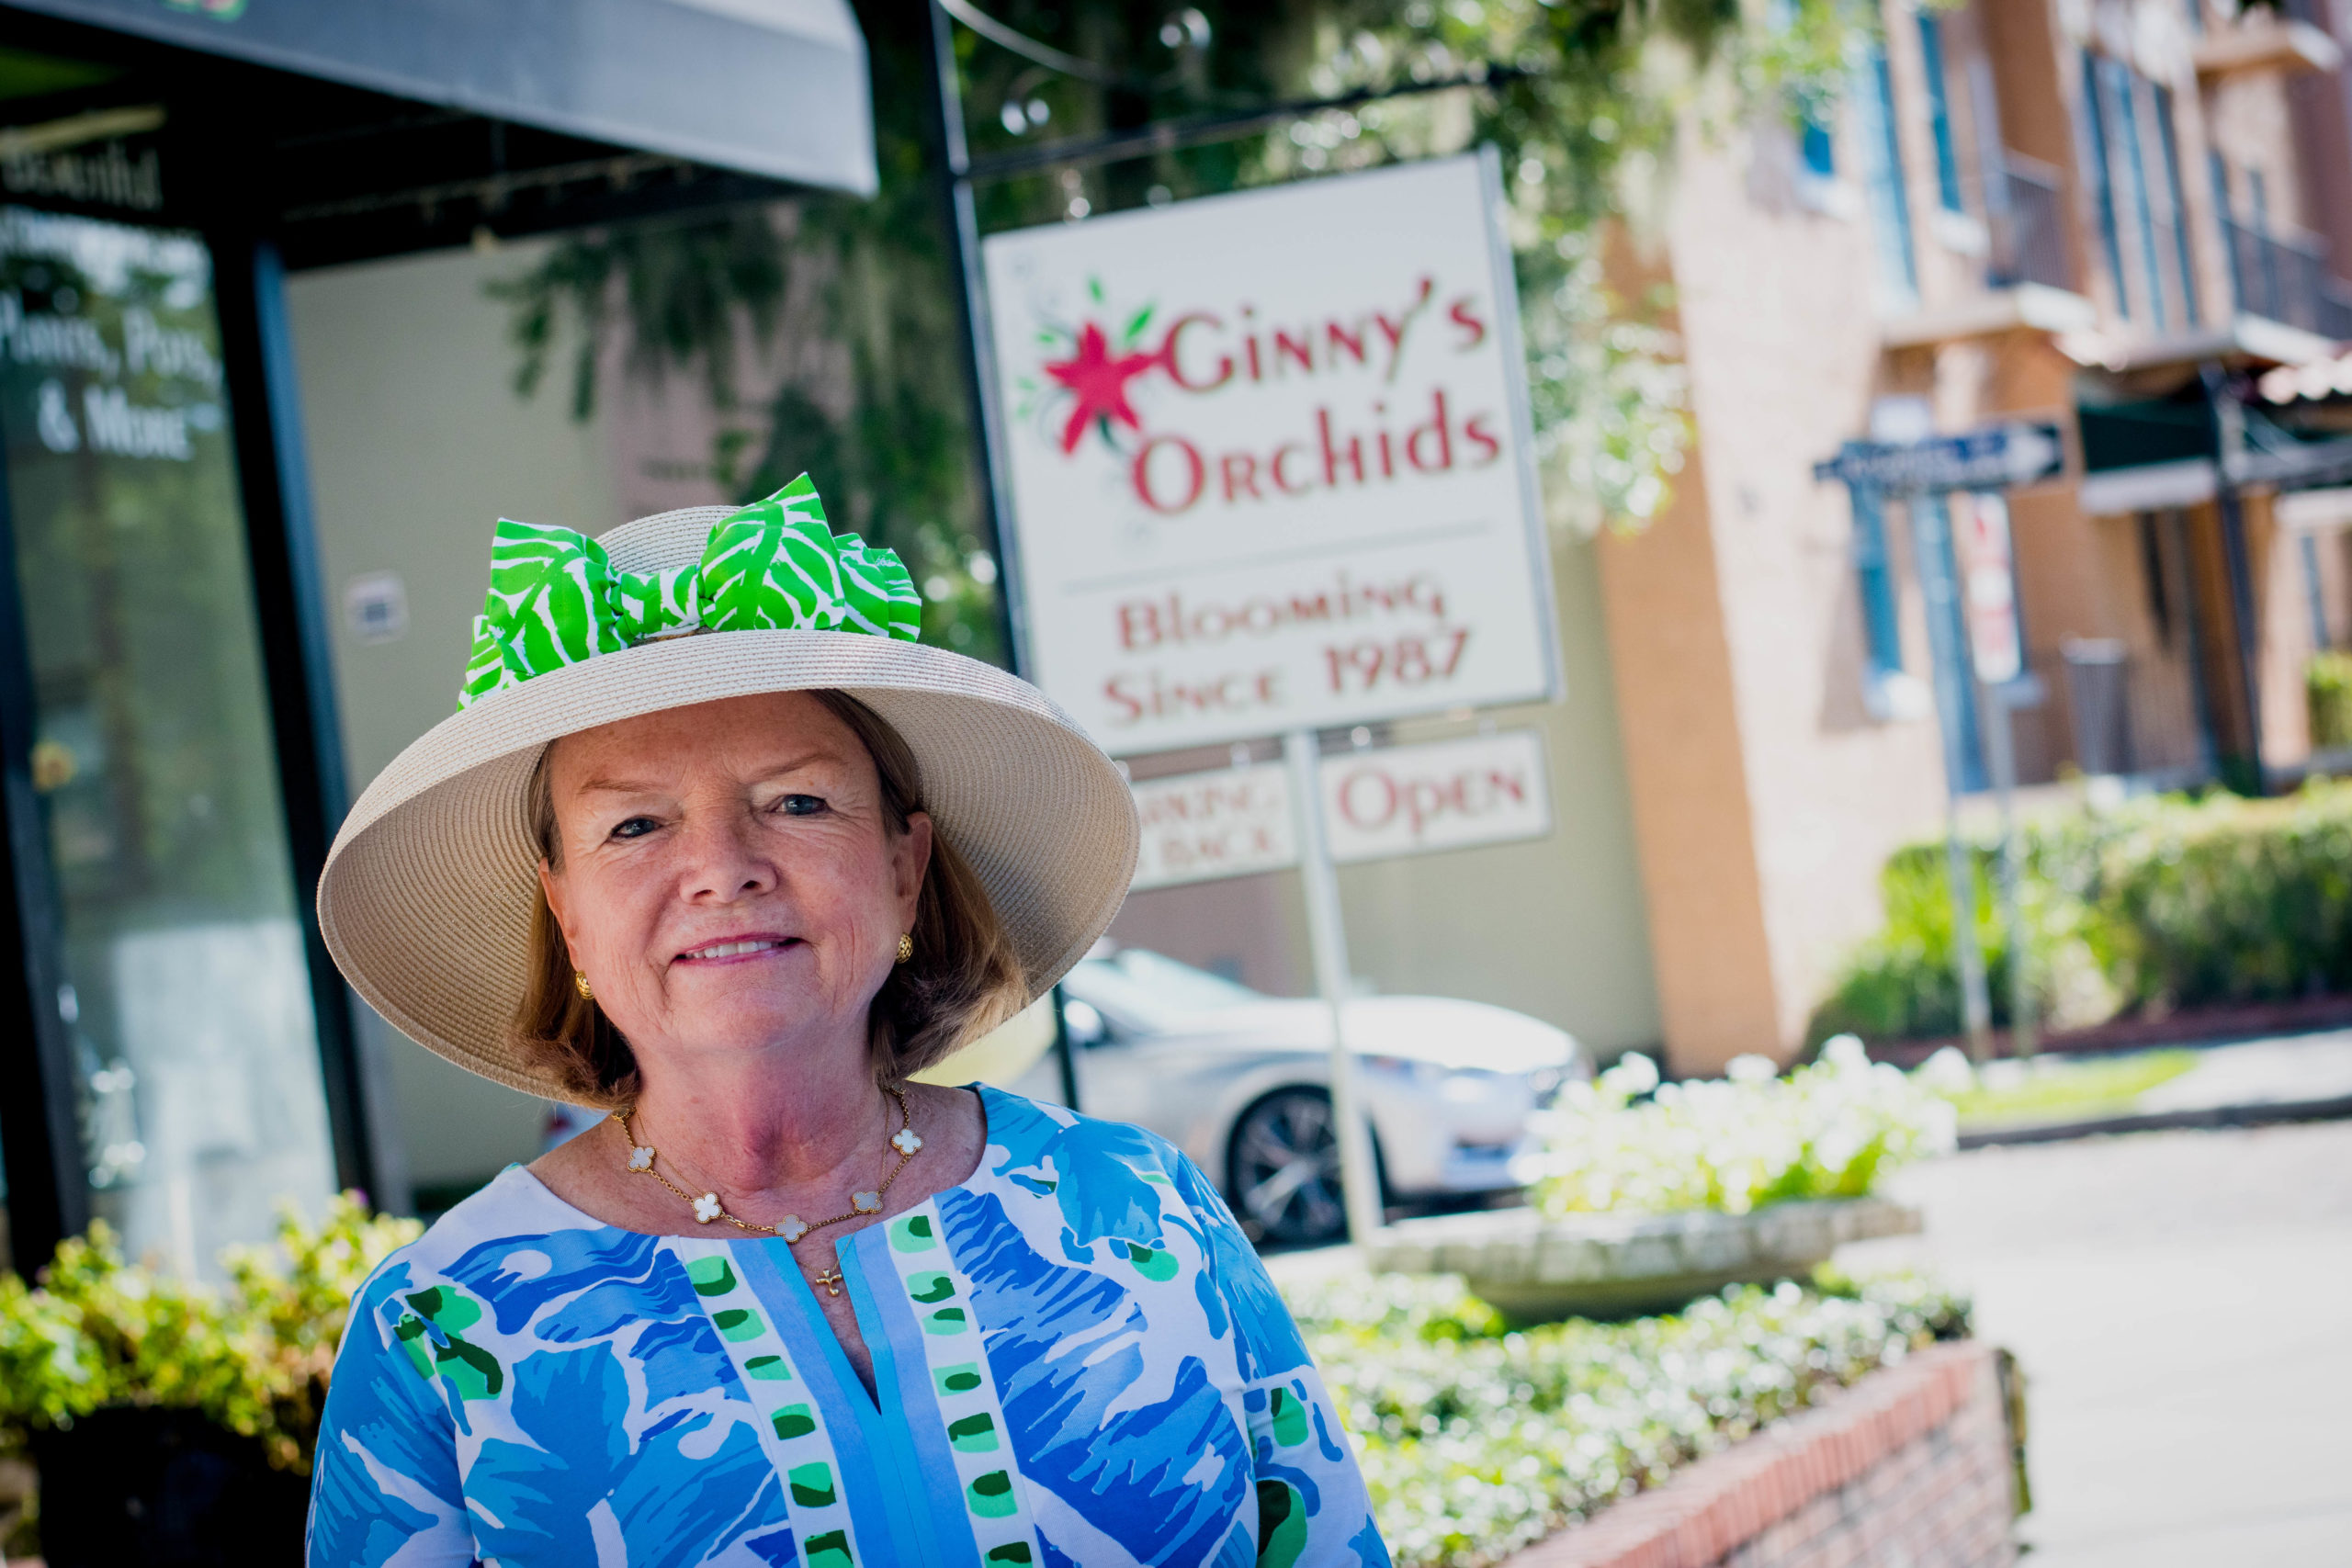 Ginny Enstad stands in front of her shop, Ginny's Orchids, located on Morse Boulevard.